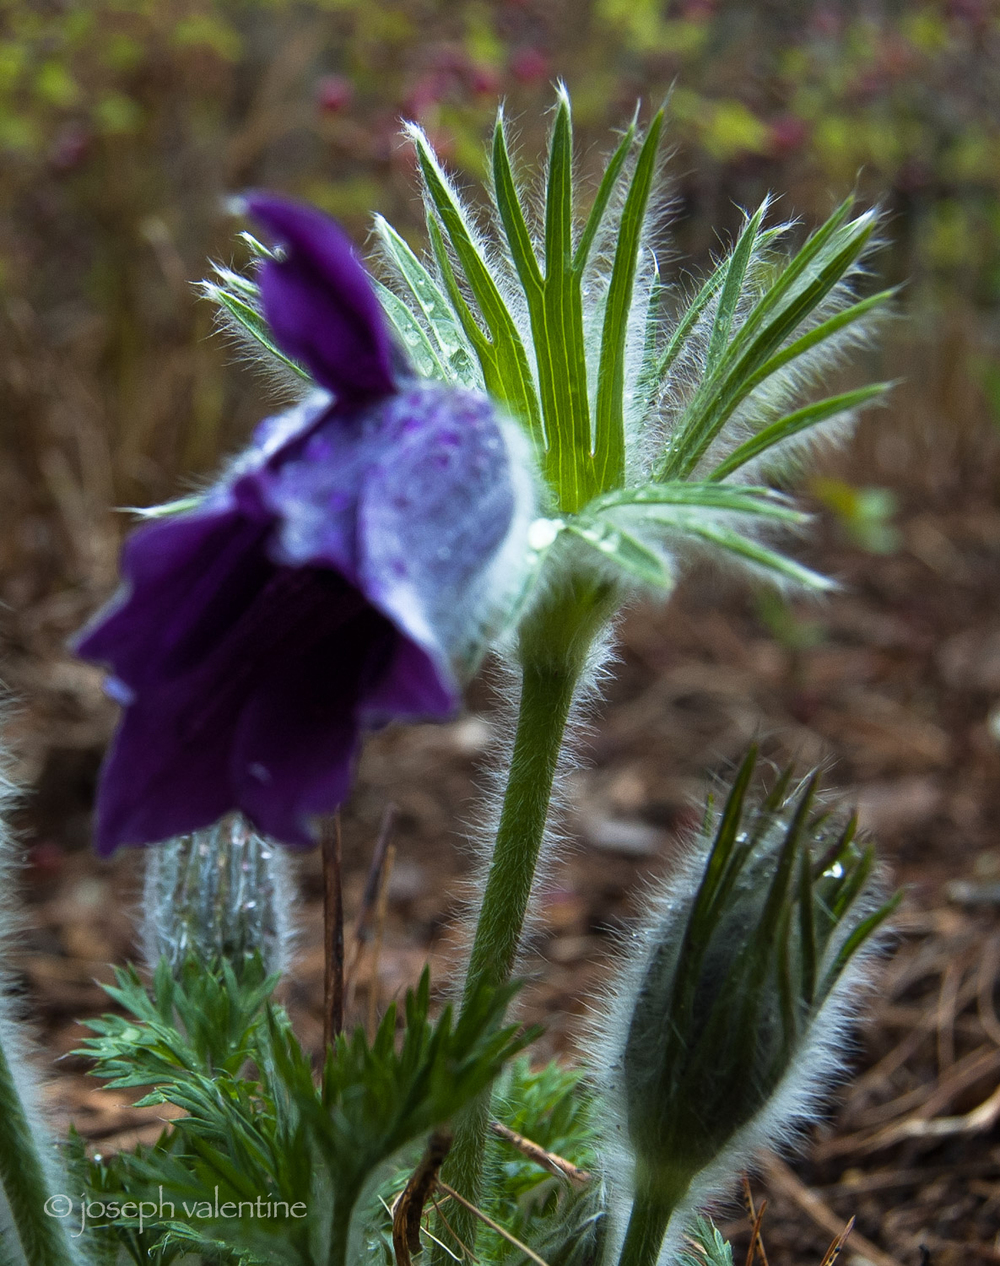 Trichomes resembling silky soft hair cover almost all parts of the early spring blooming plant,  Pulsatilla vulgaris  (the Pasque Flower) in order to keep the plant better insulated during a time of the year when temperatures can fluctuate dramatically.